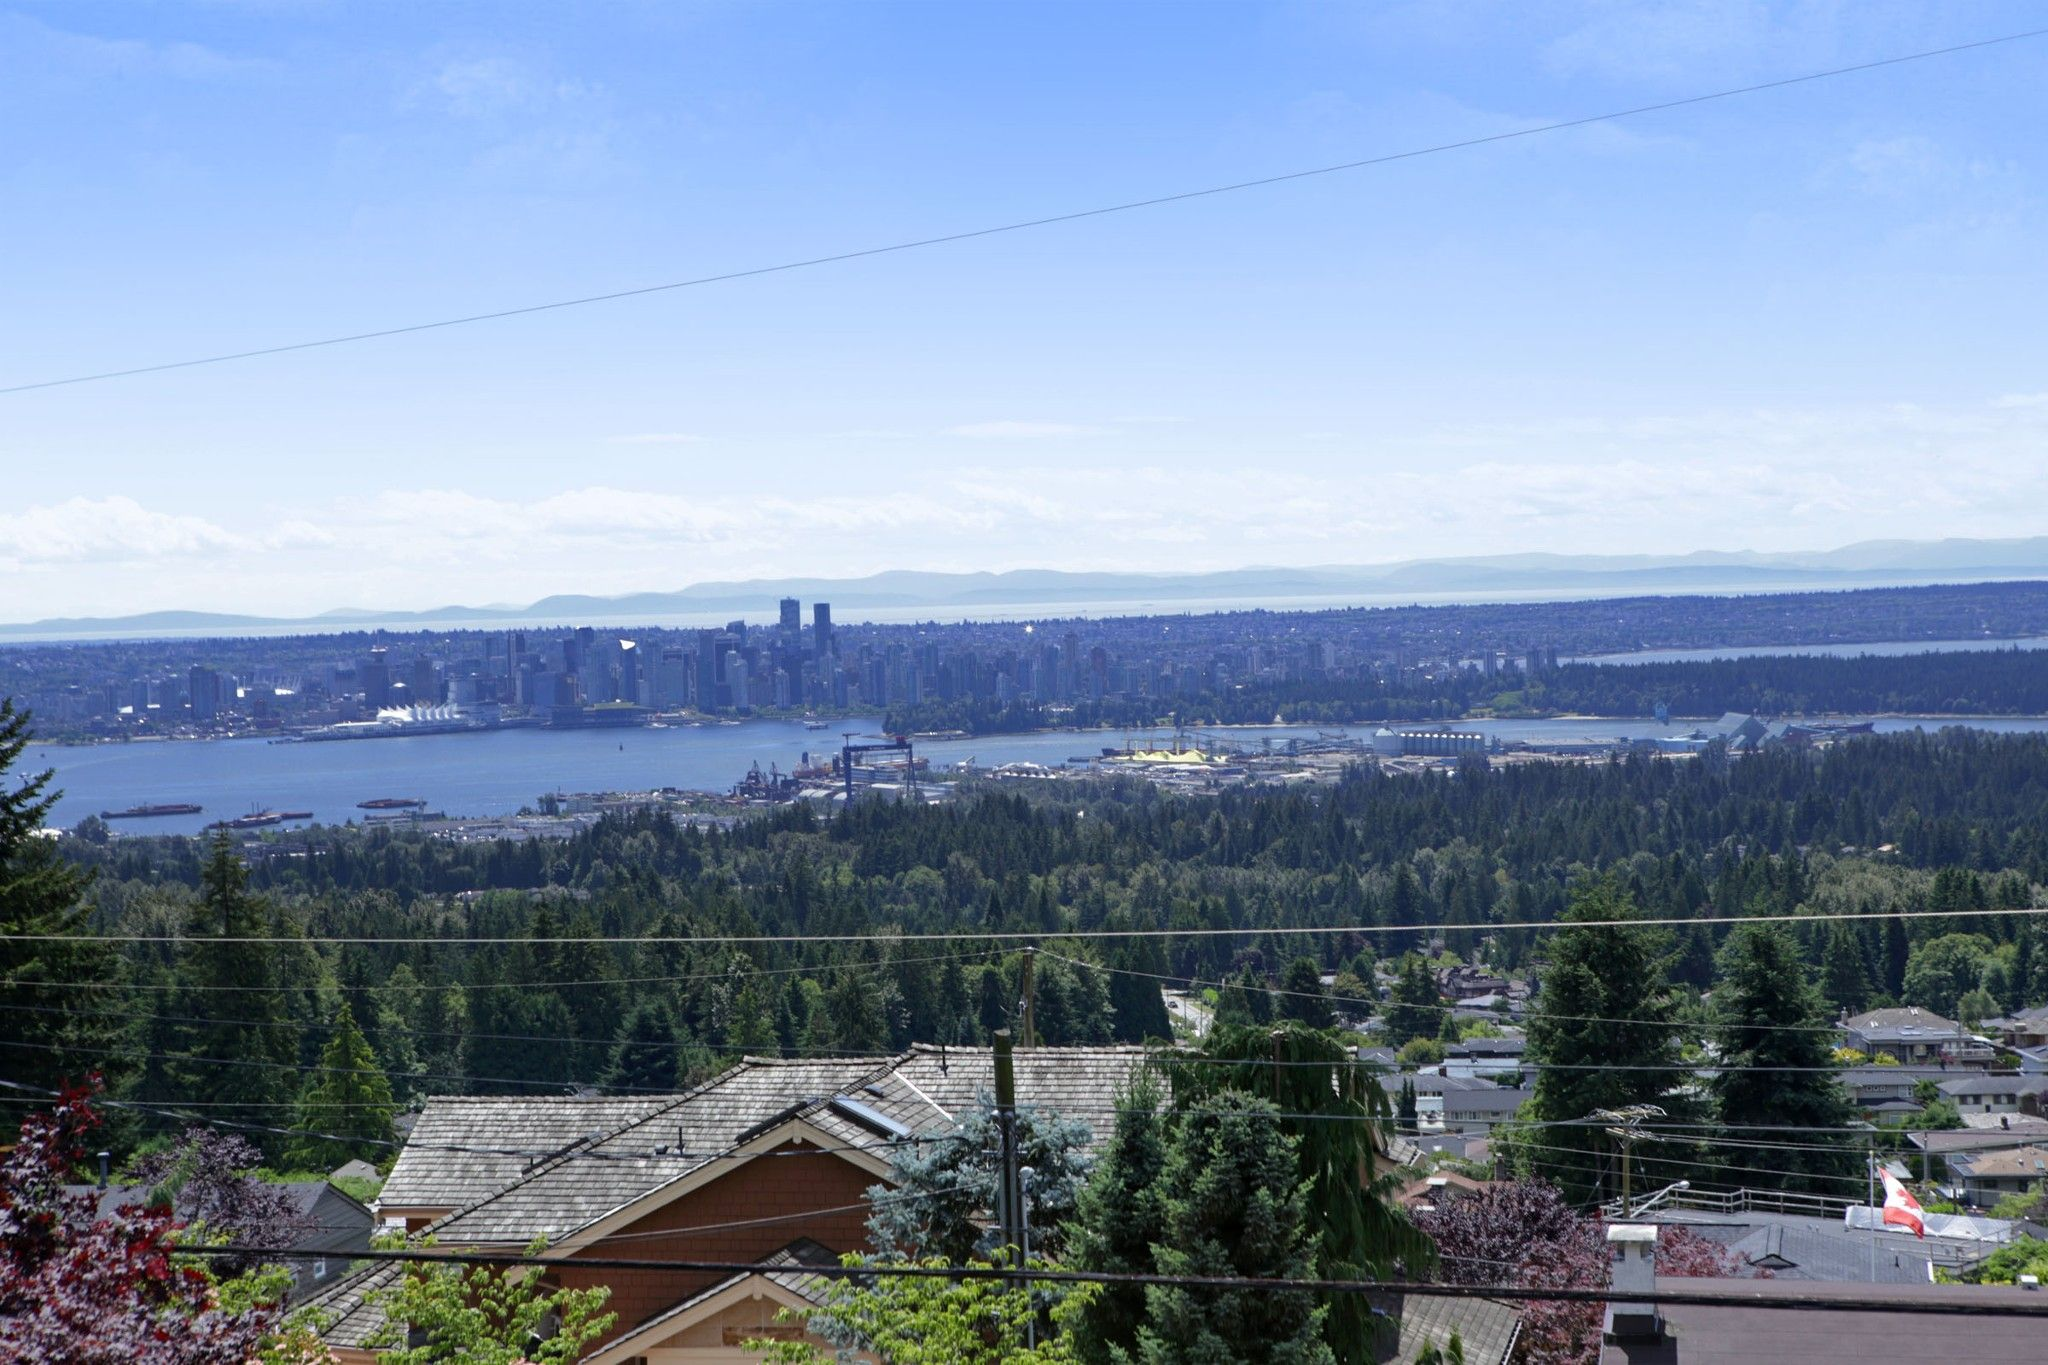 Photo 9: Photos: 372 VENTURA Crescent in North Vancouver: Upper Delbrook House for sale : MLS®# R2284717